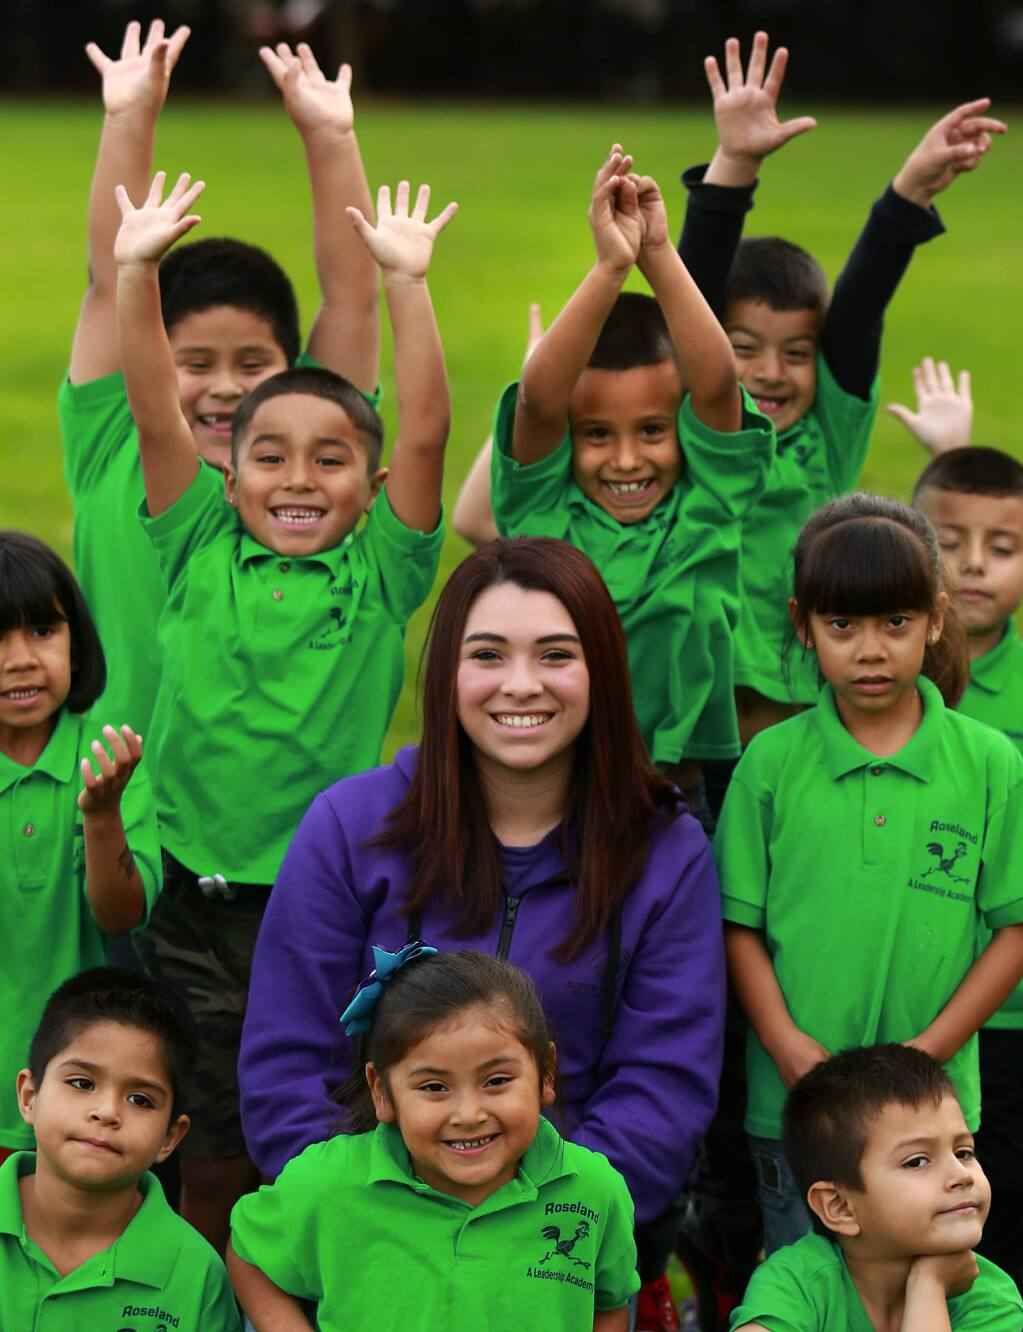 Teen face Maria Millagomez is on staff with the Boys and Girls Club at Roseland School in Santa Rosa.